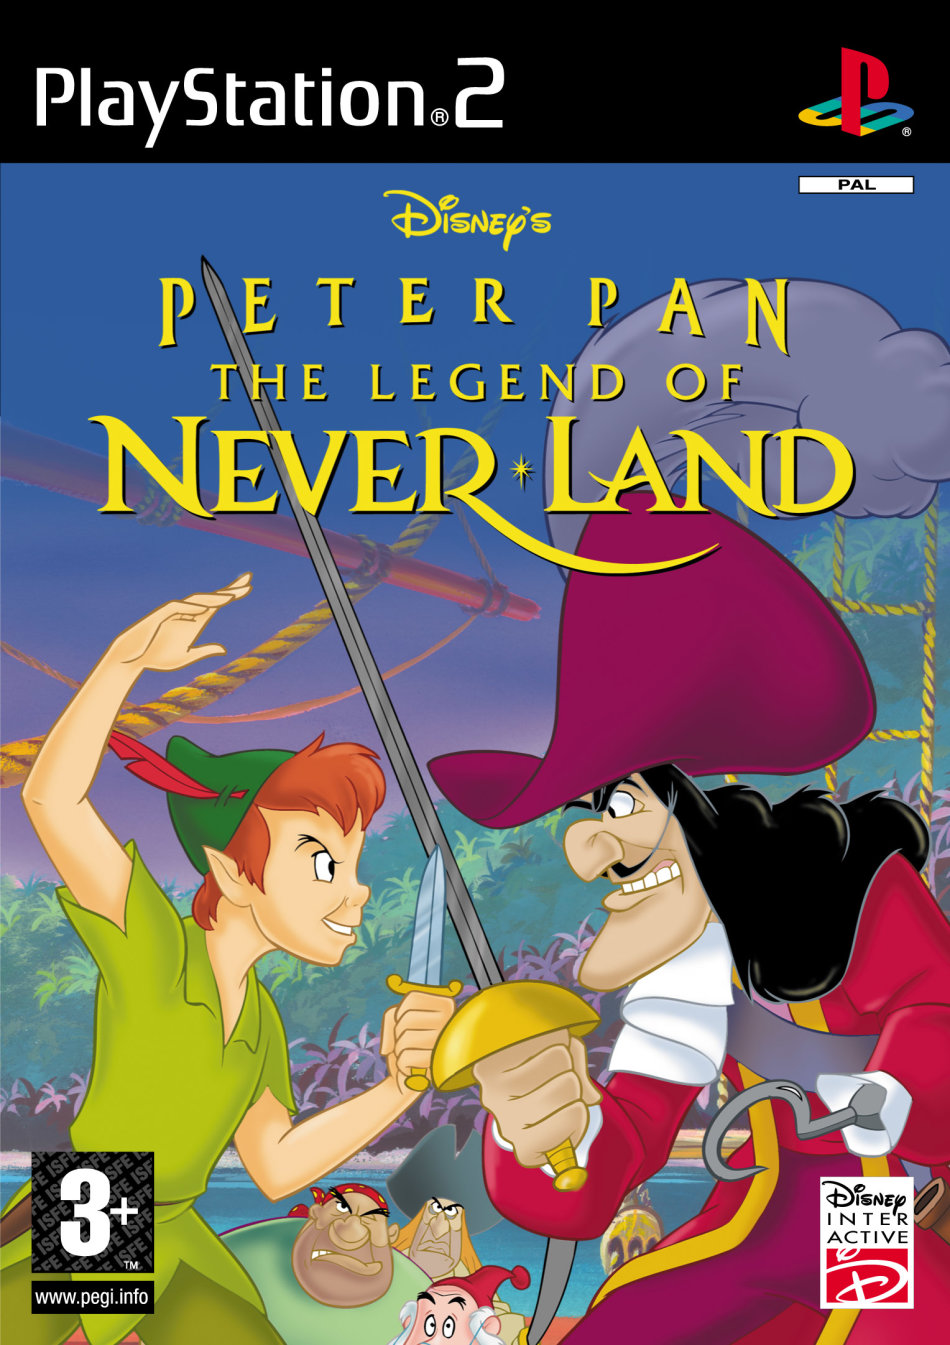 Disneys Peter Pan The Legend of Neverland